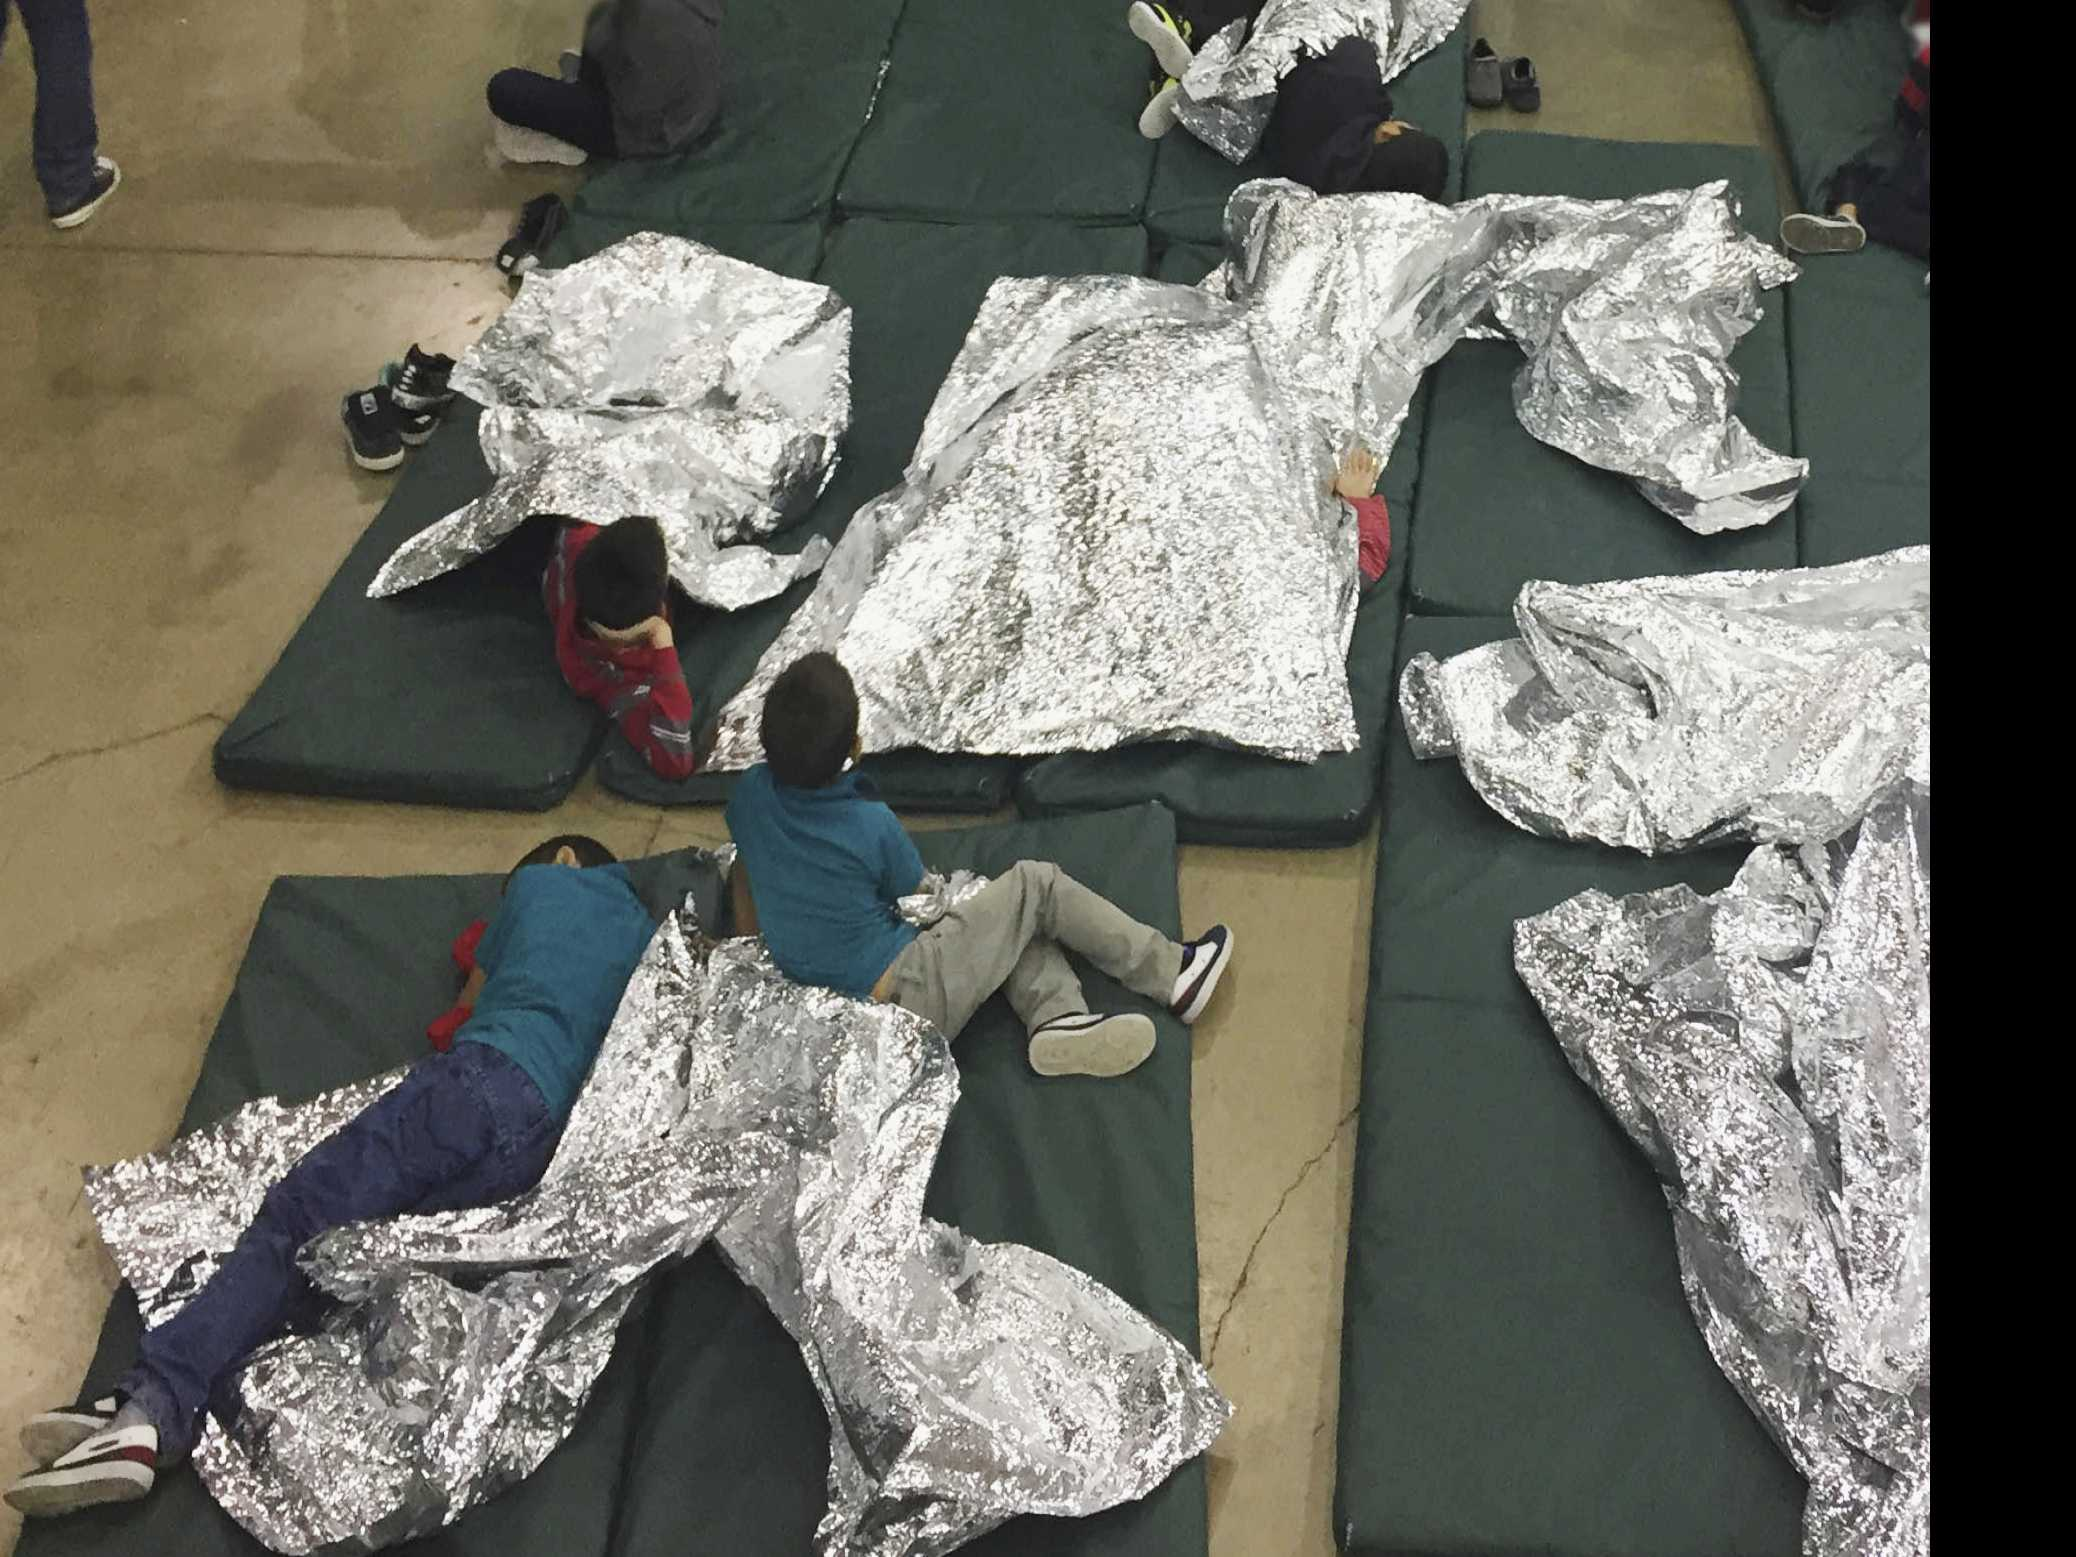 Immigrant Children Describe Treatment in Detention Centers